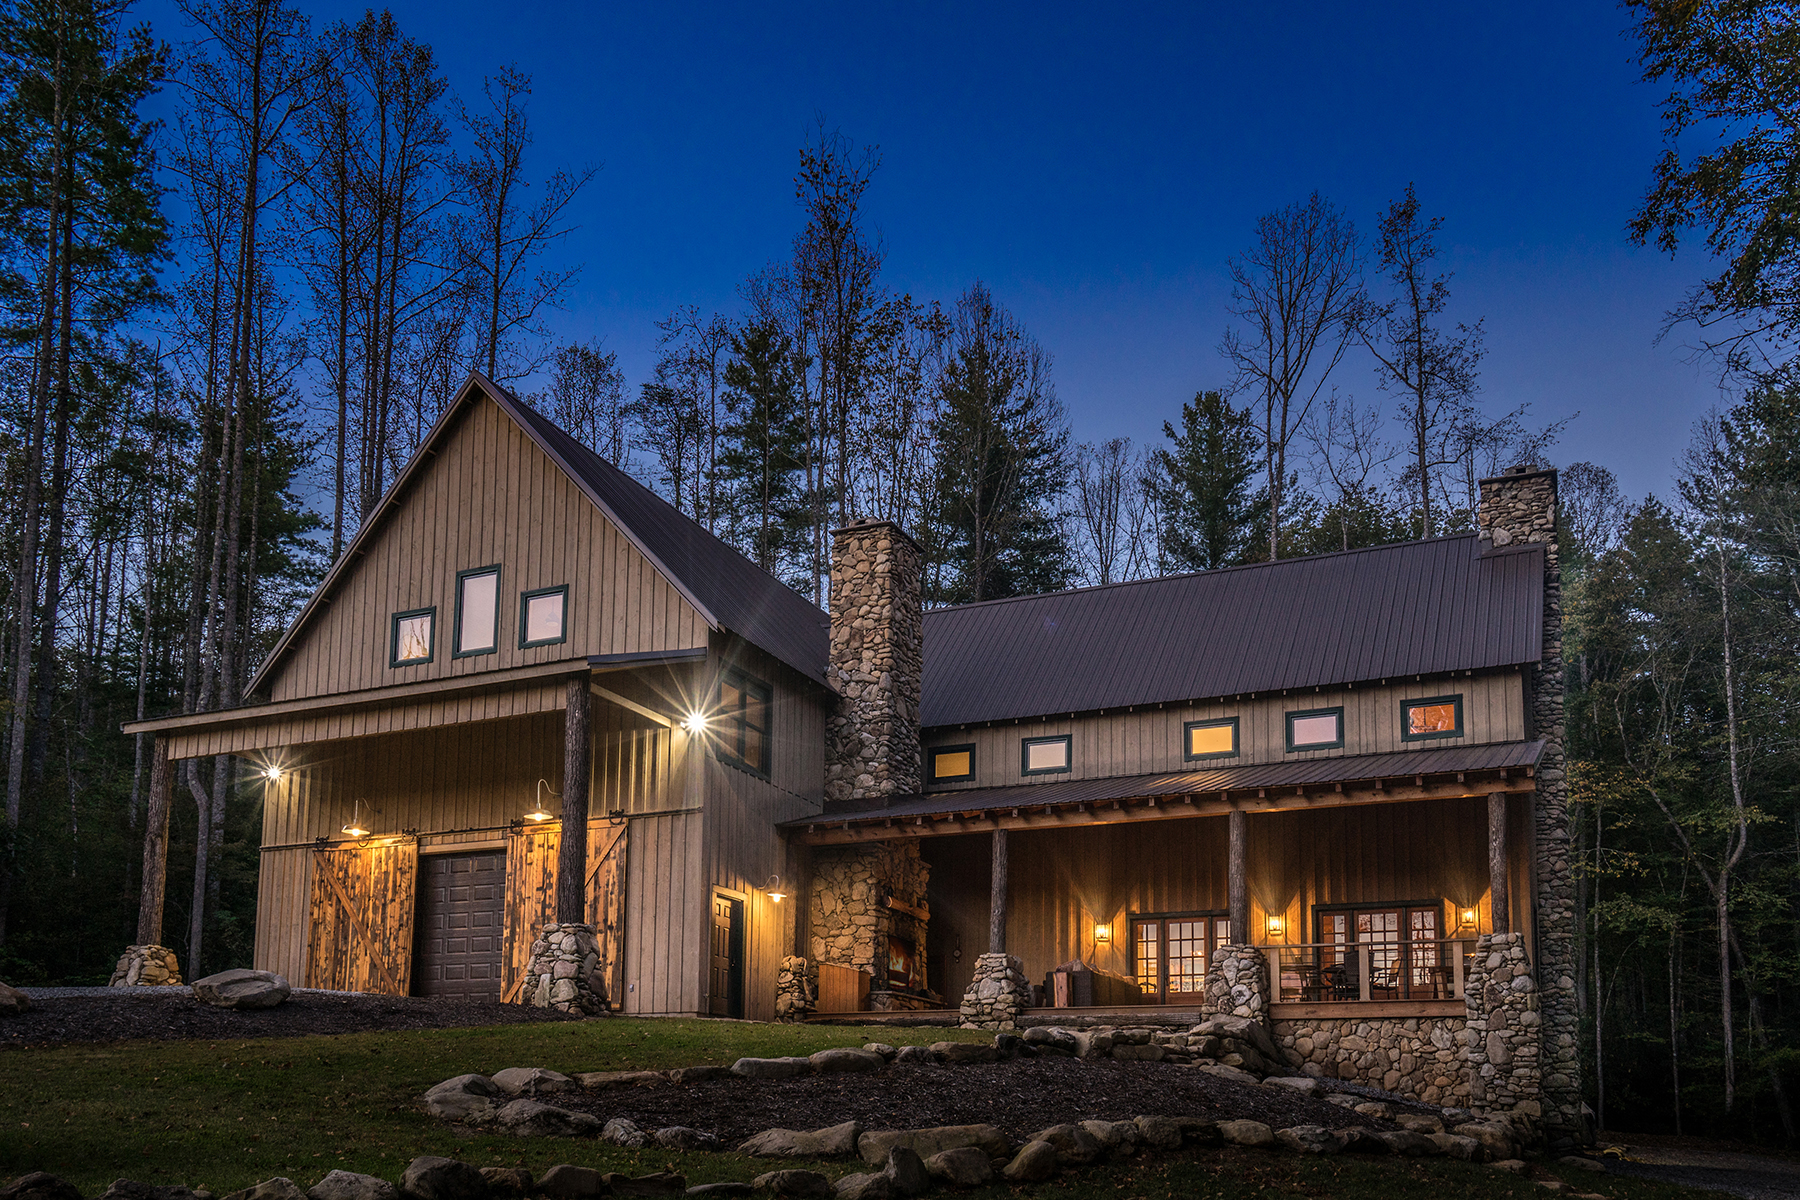 Single Family Home for Sale at 152 ACRE BLUE RIDGE MOUNTAIN ESTATE 7035 Johns River Road, Lenoir, North Carolina 28645 United StatesIn/Around: Blowing Rock